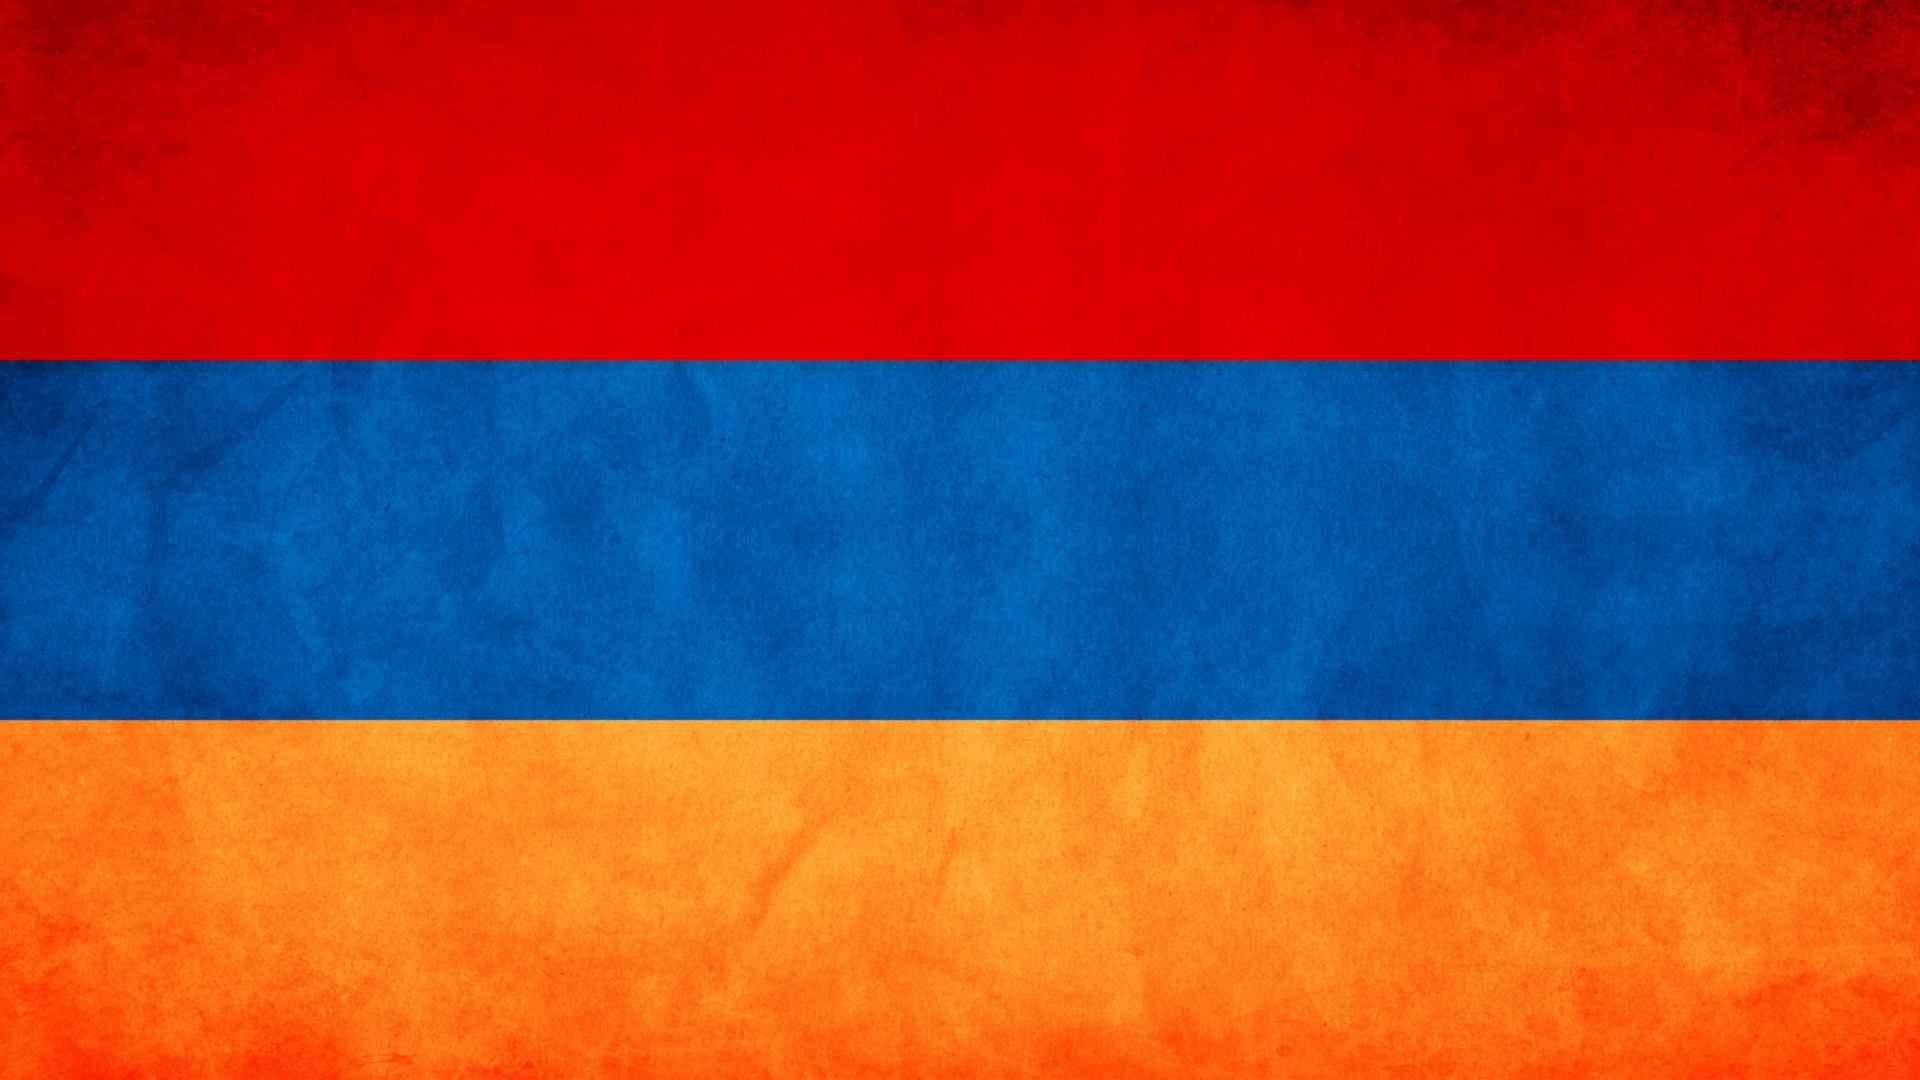 View Armenia flag 1920x1080 besides 2012 12 01 archive as well Tartar together with Cancelli Chiusi as well Sivas 01. on armenian html